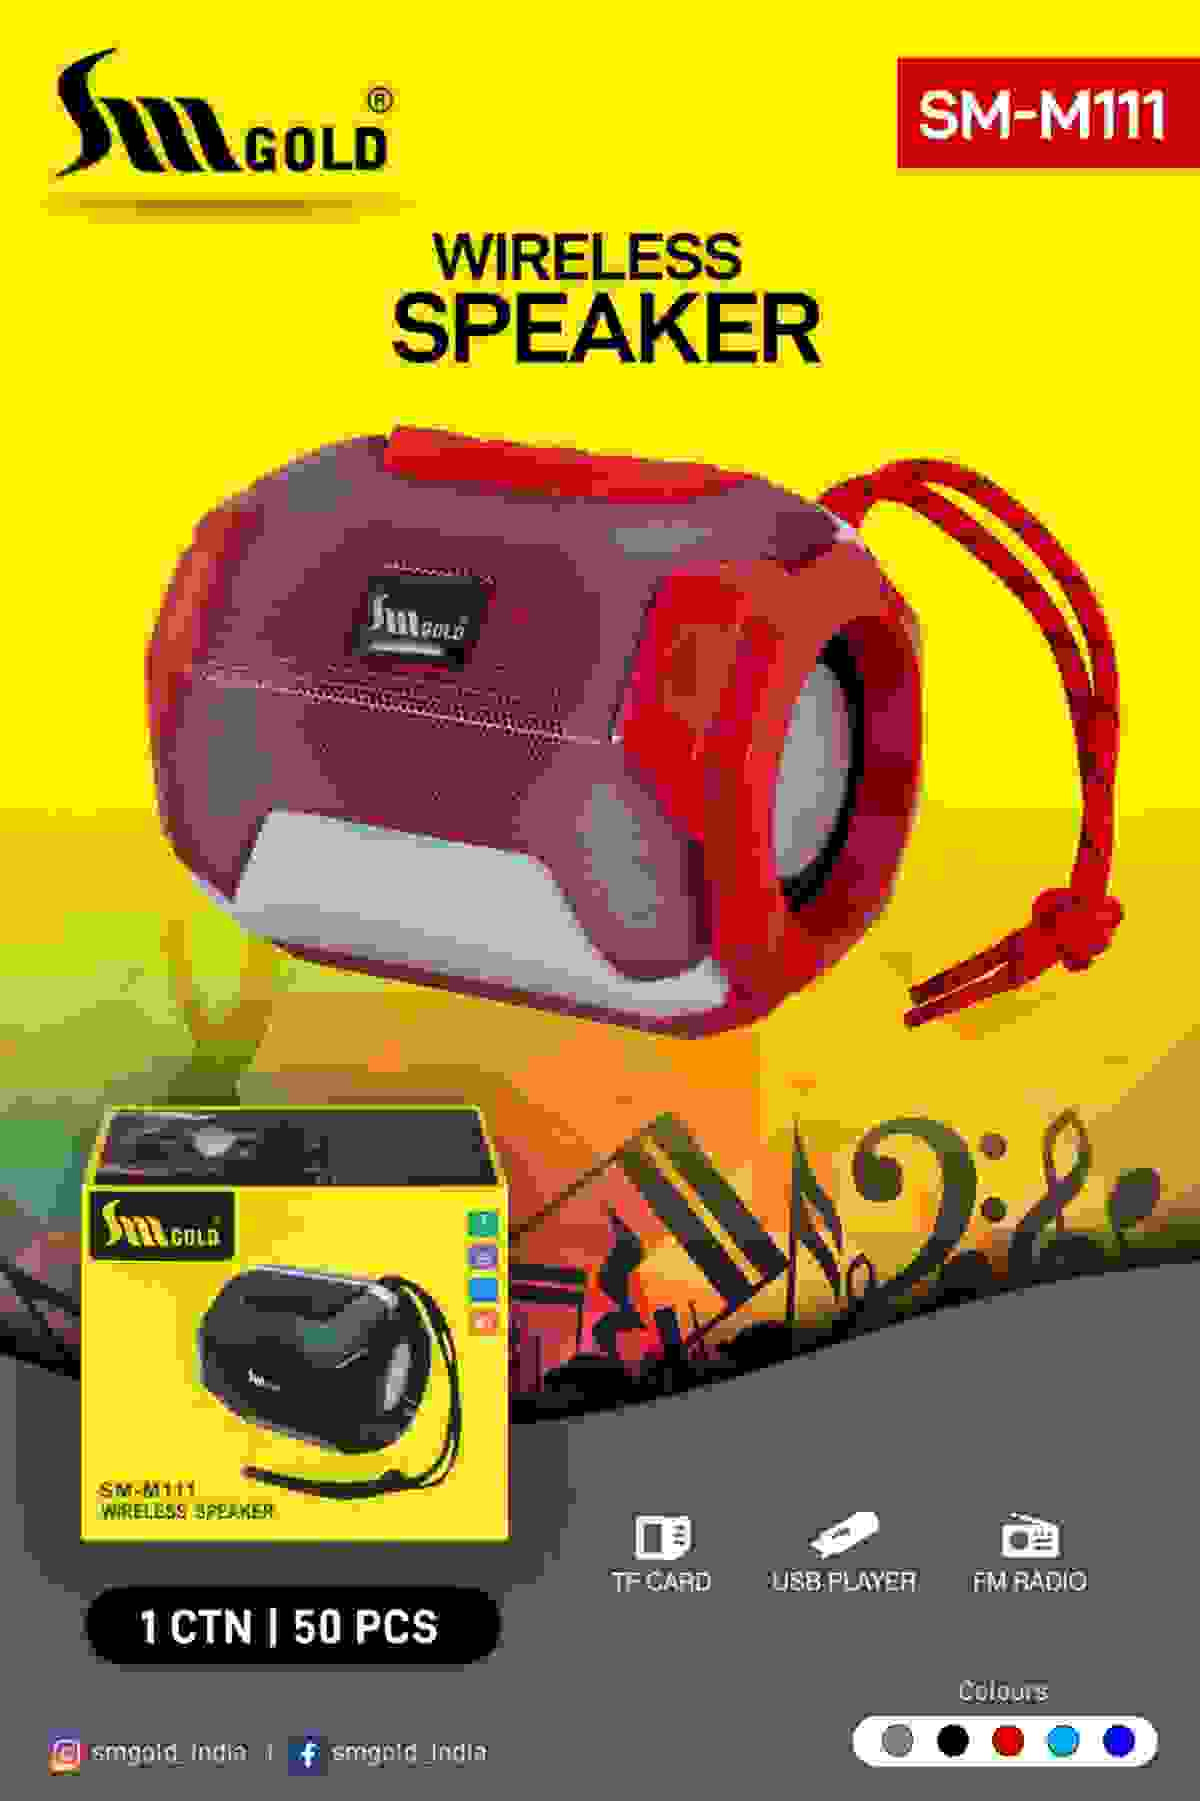 SM M111 | SM Gold SM-M111 Speaker Price 6 Mar 2021 Sm M111 Bluetooth Speaker online shop - HelpingIndia